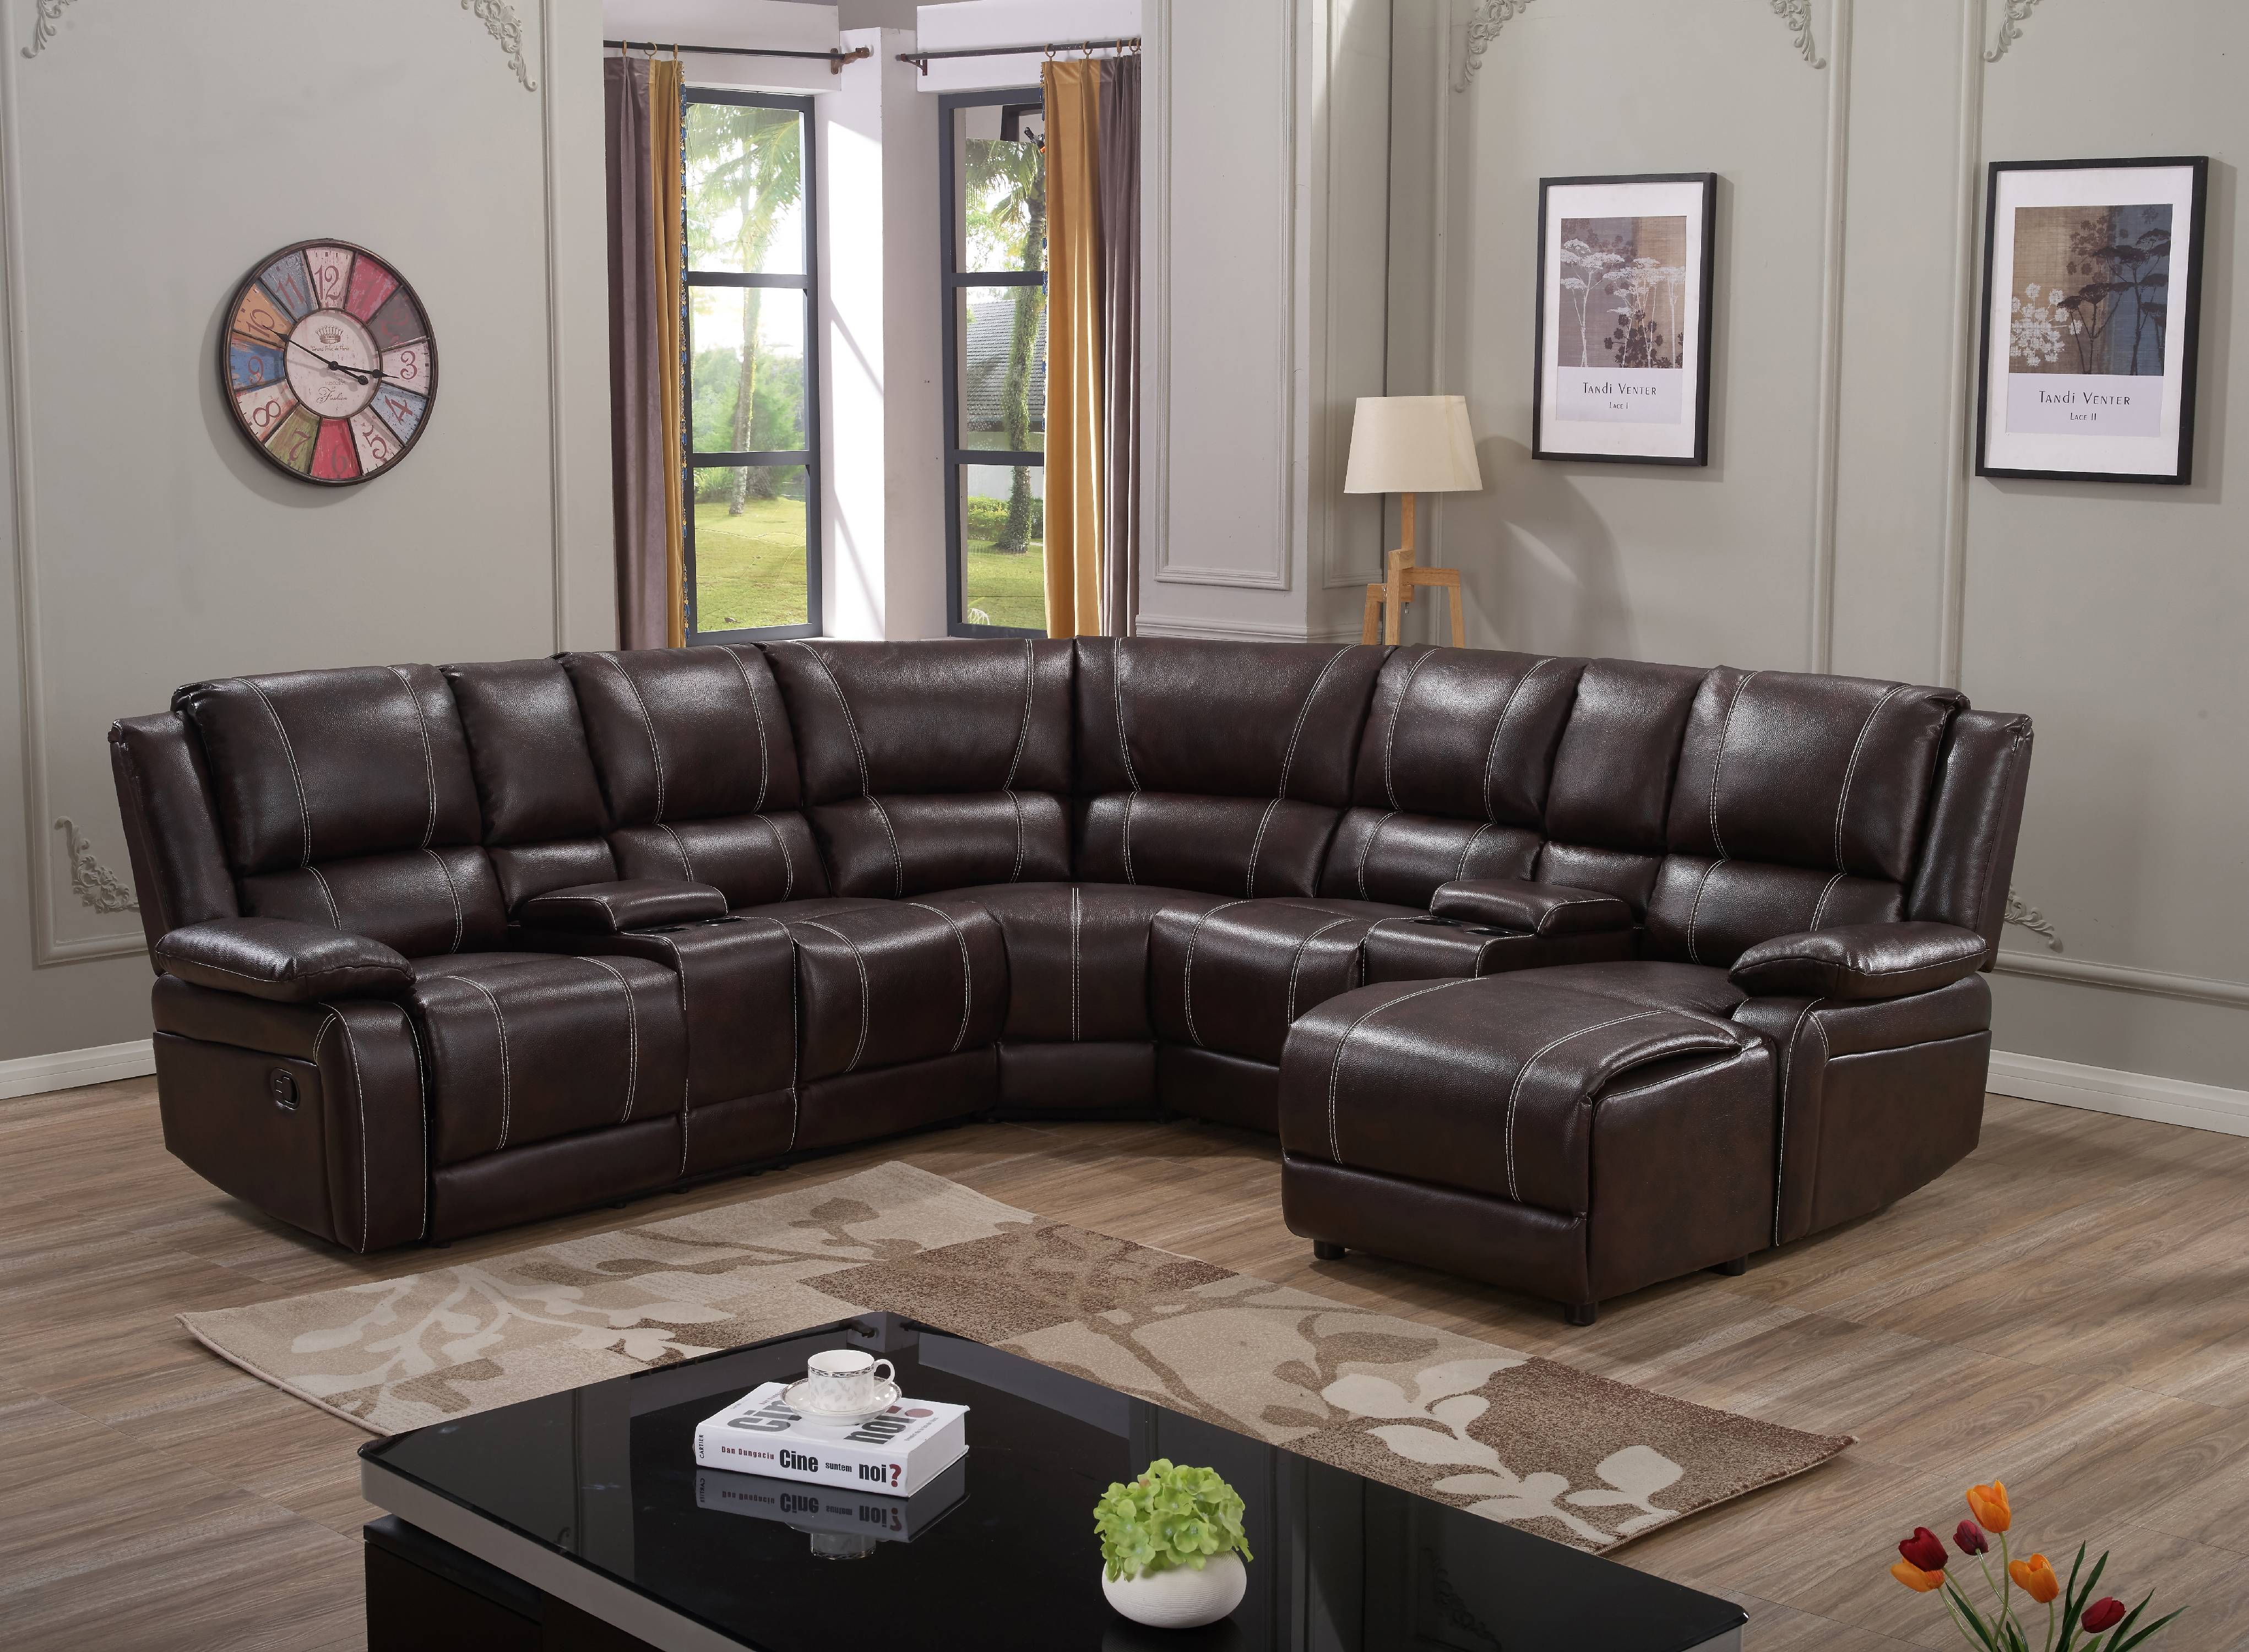 7PC Luxury Bonded Leather Reclining Sectional Sofa Set: Brown Color ...